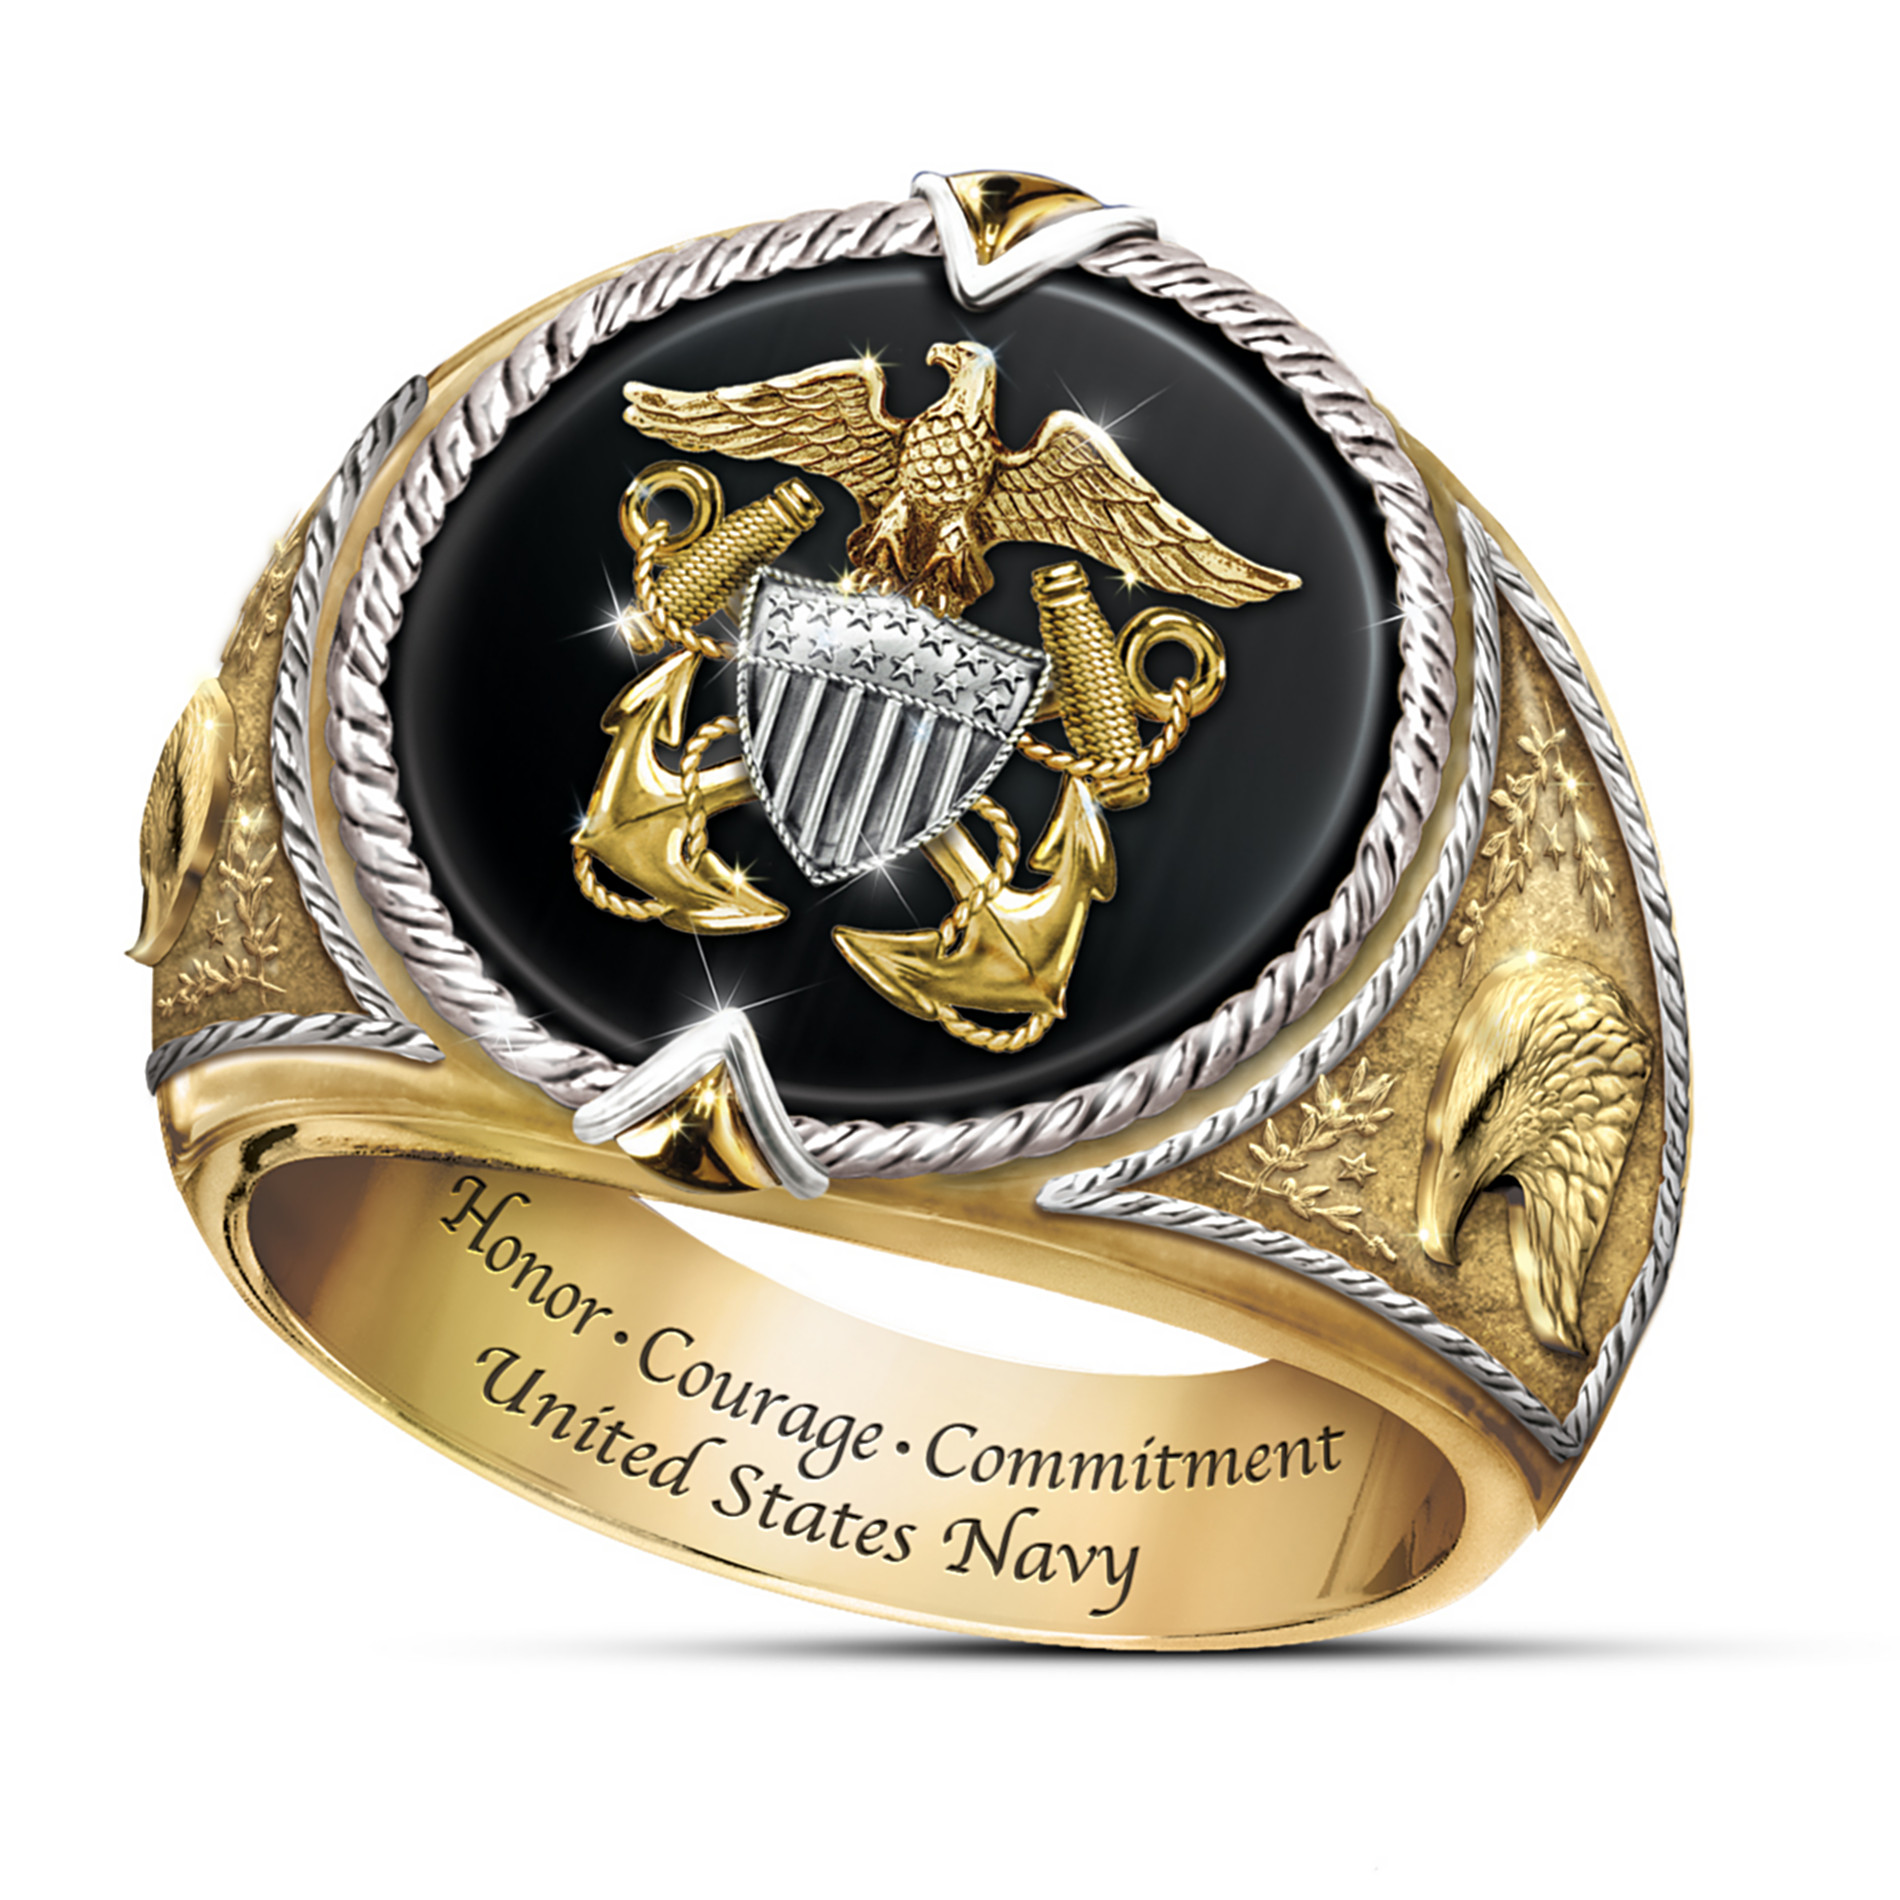 The Bradford Exchange Ring: Honor, Courage And Commitment U.S. Navy Tribute Ring at Sears.com